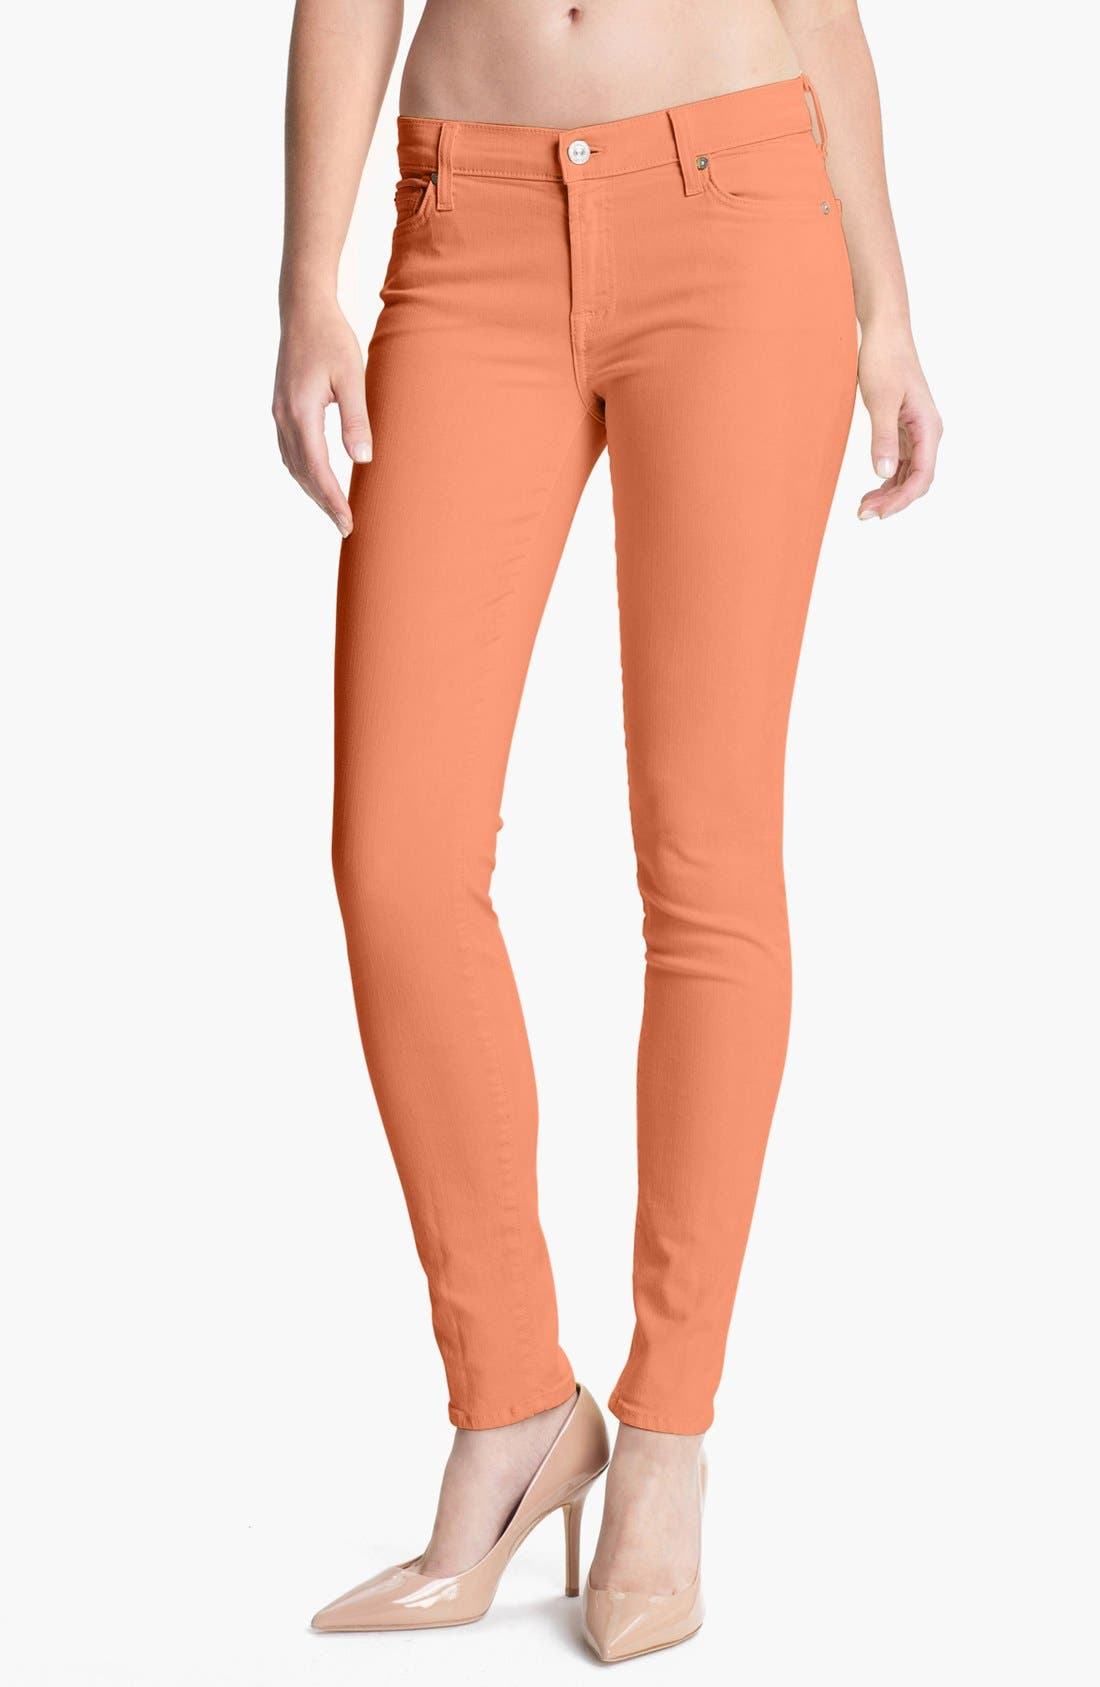 Alternate Image 1 Selected - 7 For All Mankind® 'Slim Illusion' Skinny Stretch Jeans (Apricot)